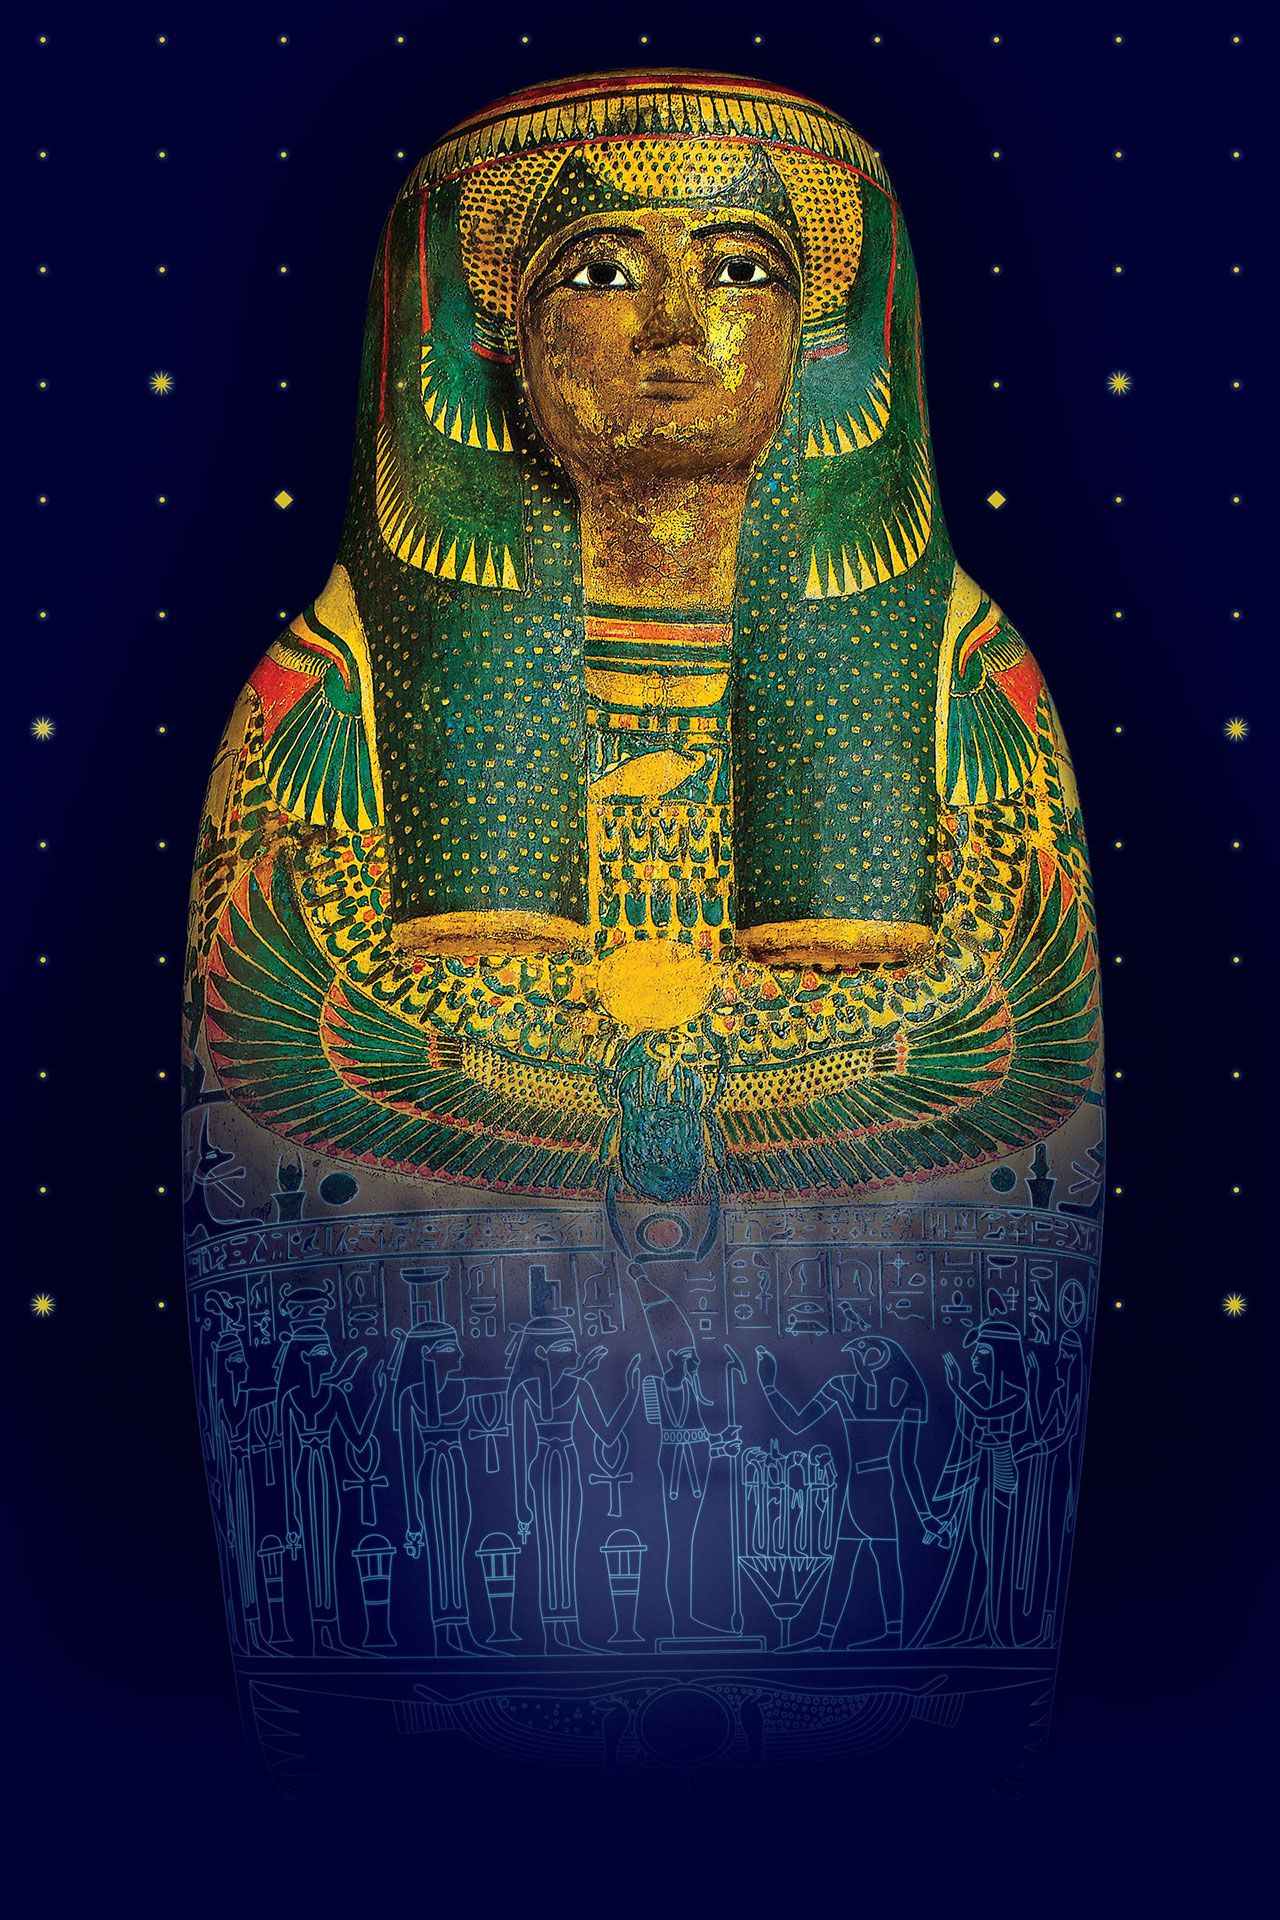 Montreal Museum of fine Arts presents Egyptian Mummies: Exploring Ancient Lives